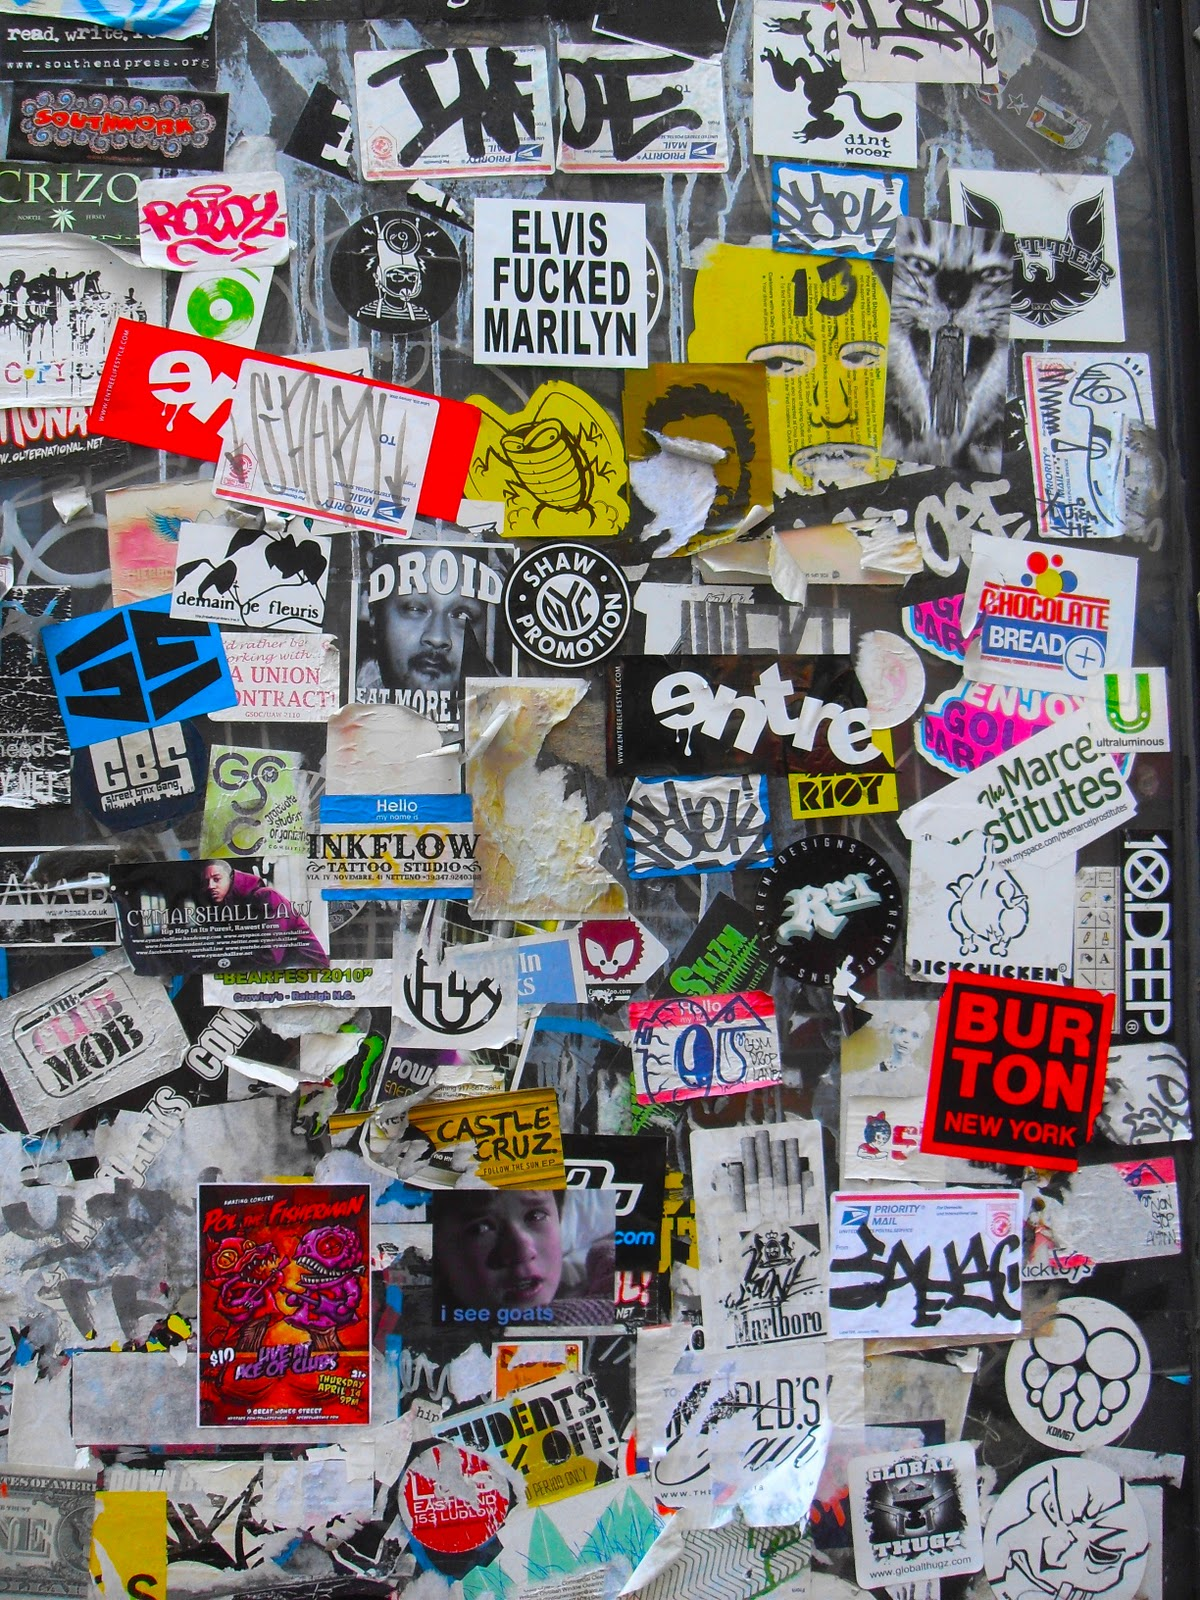 ART SKOOL DAMAGE Christian Montone Stickered On Bleecker